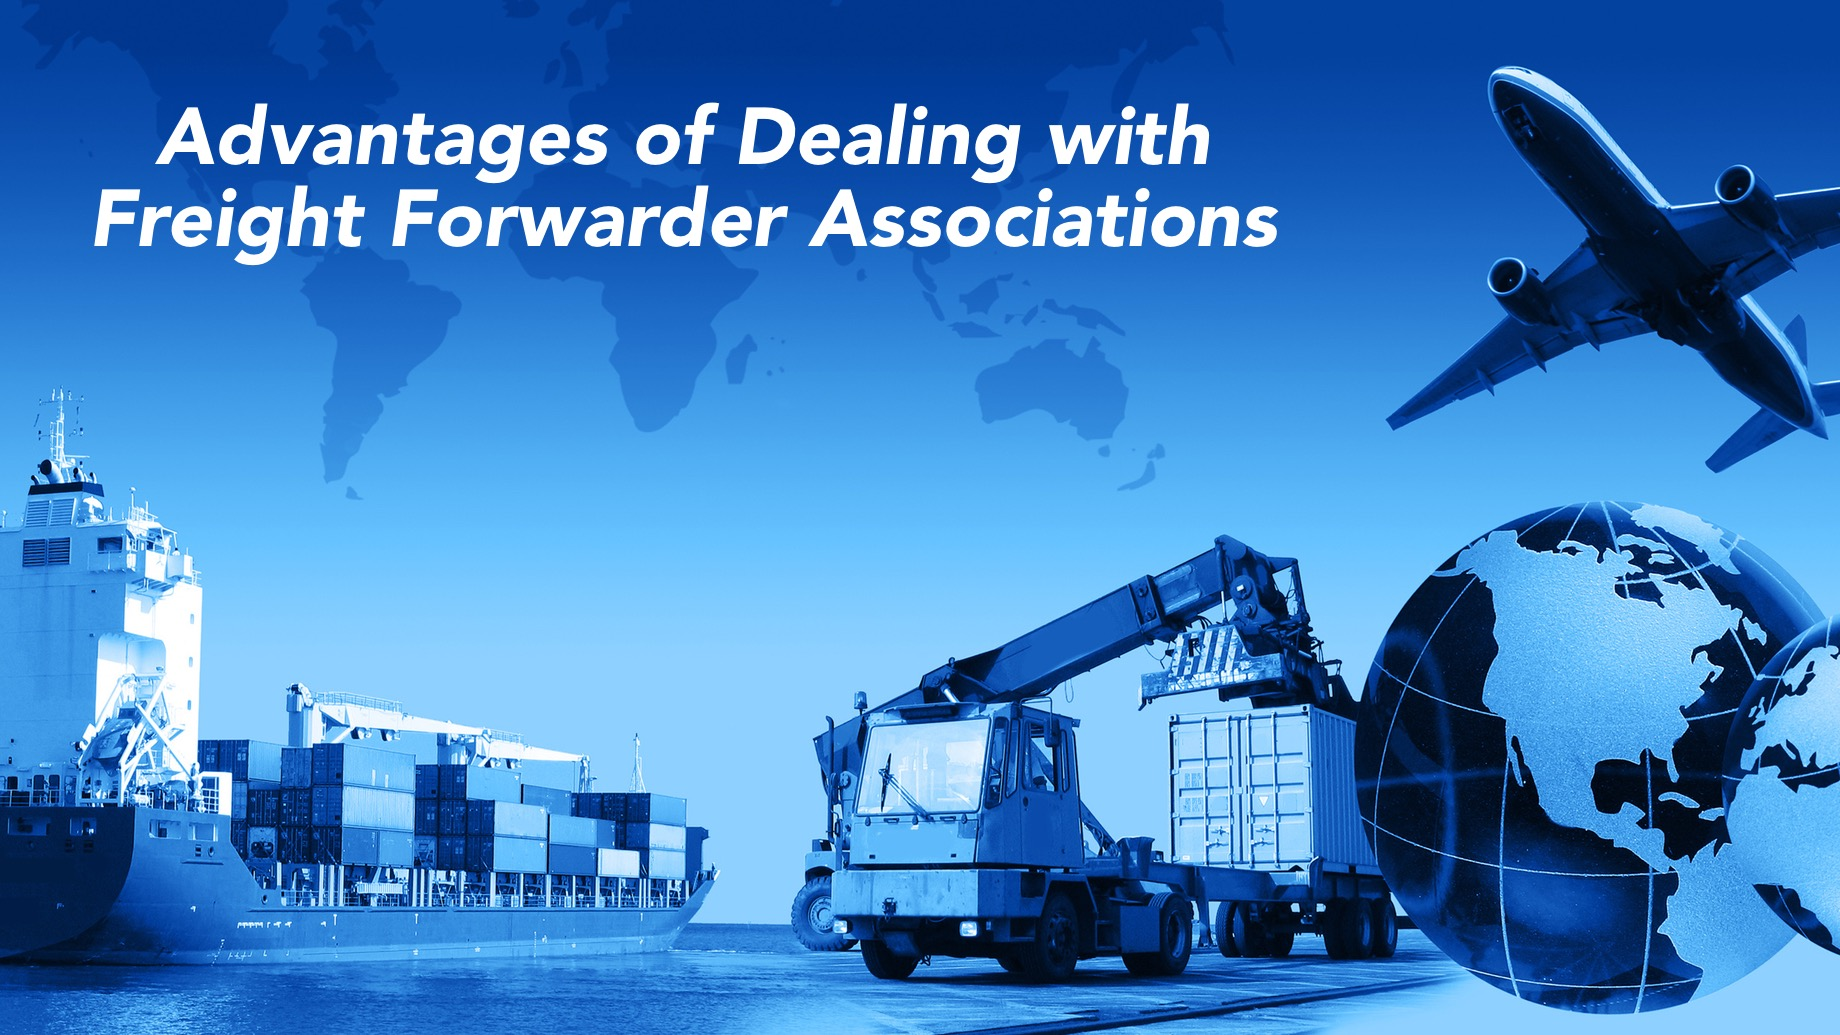 Advantages of Dealing with Freight Forwarder Associations